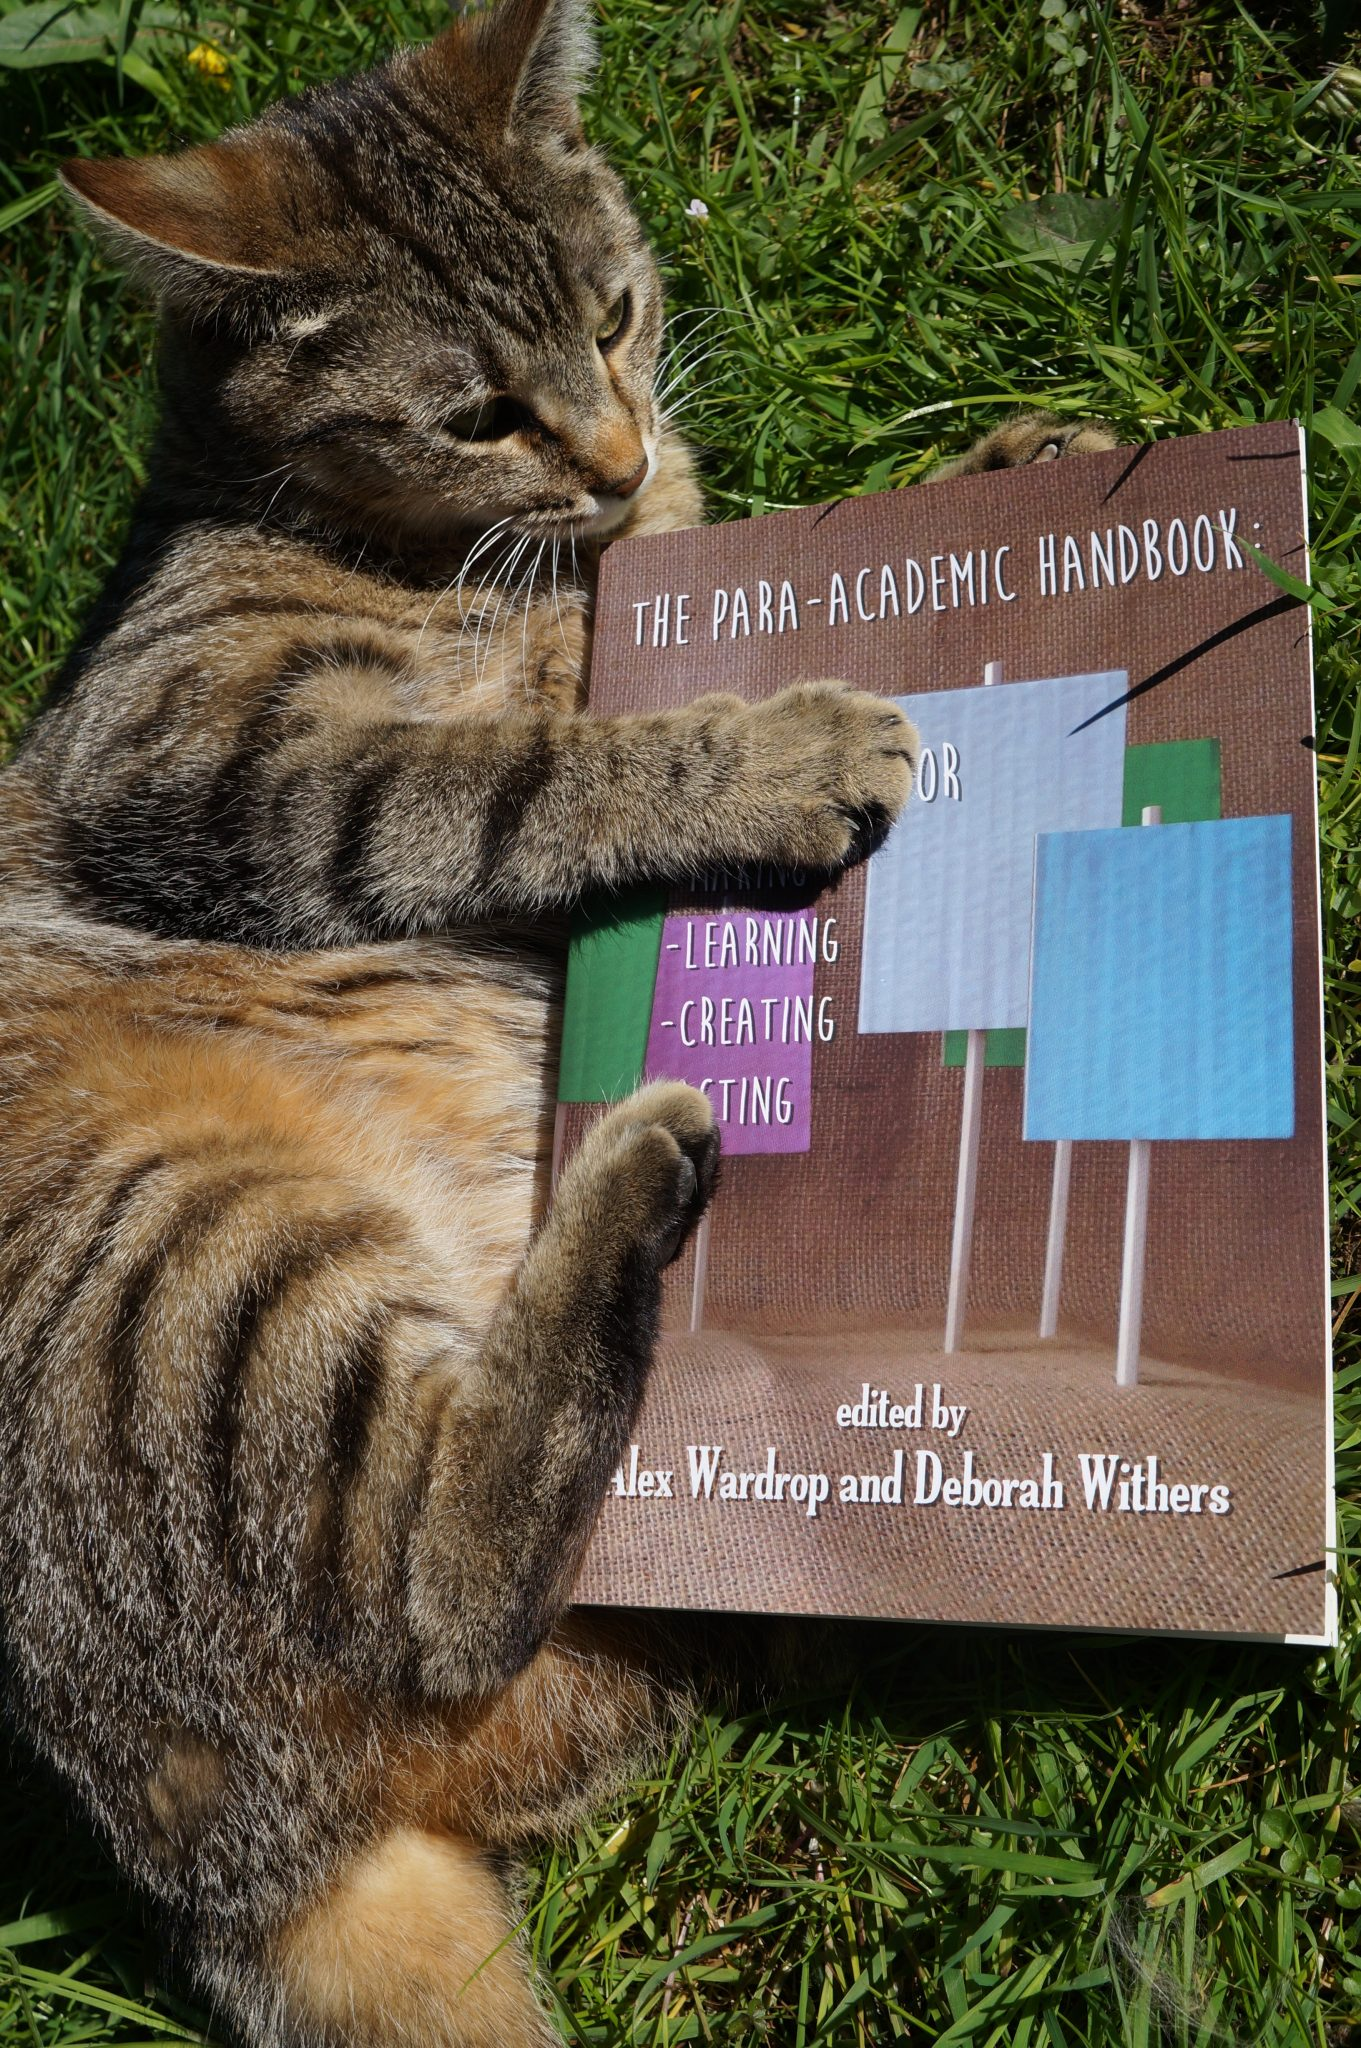 A tabby cat plays with a copy of the para-academic handbook on the grass.